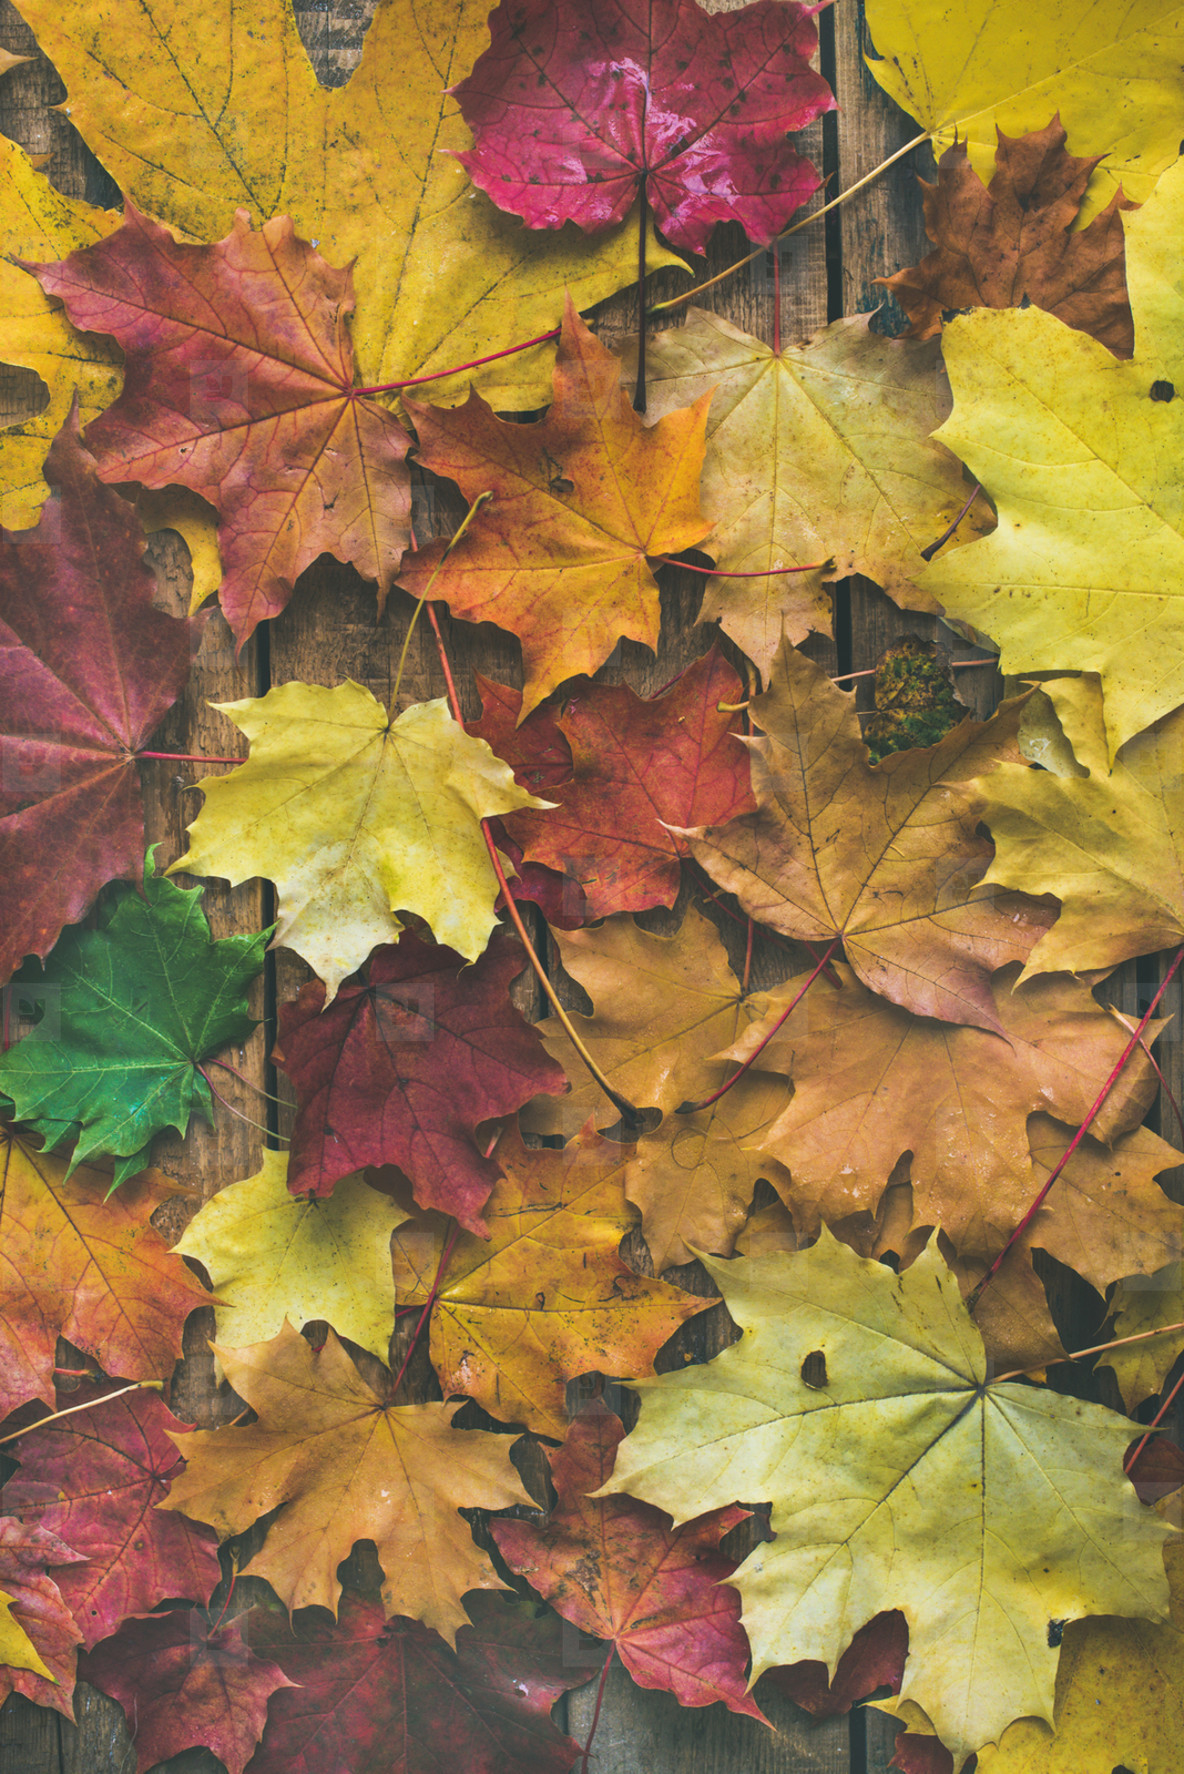 Flat lay of colorful fallen maple leaves on wooden background